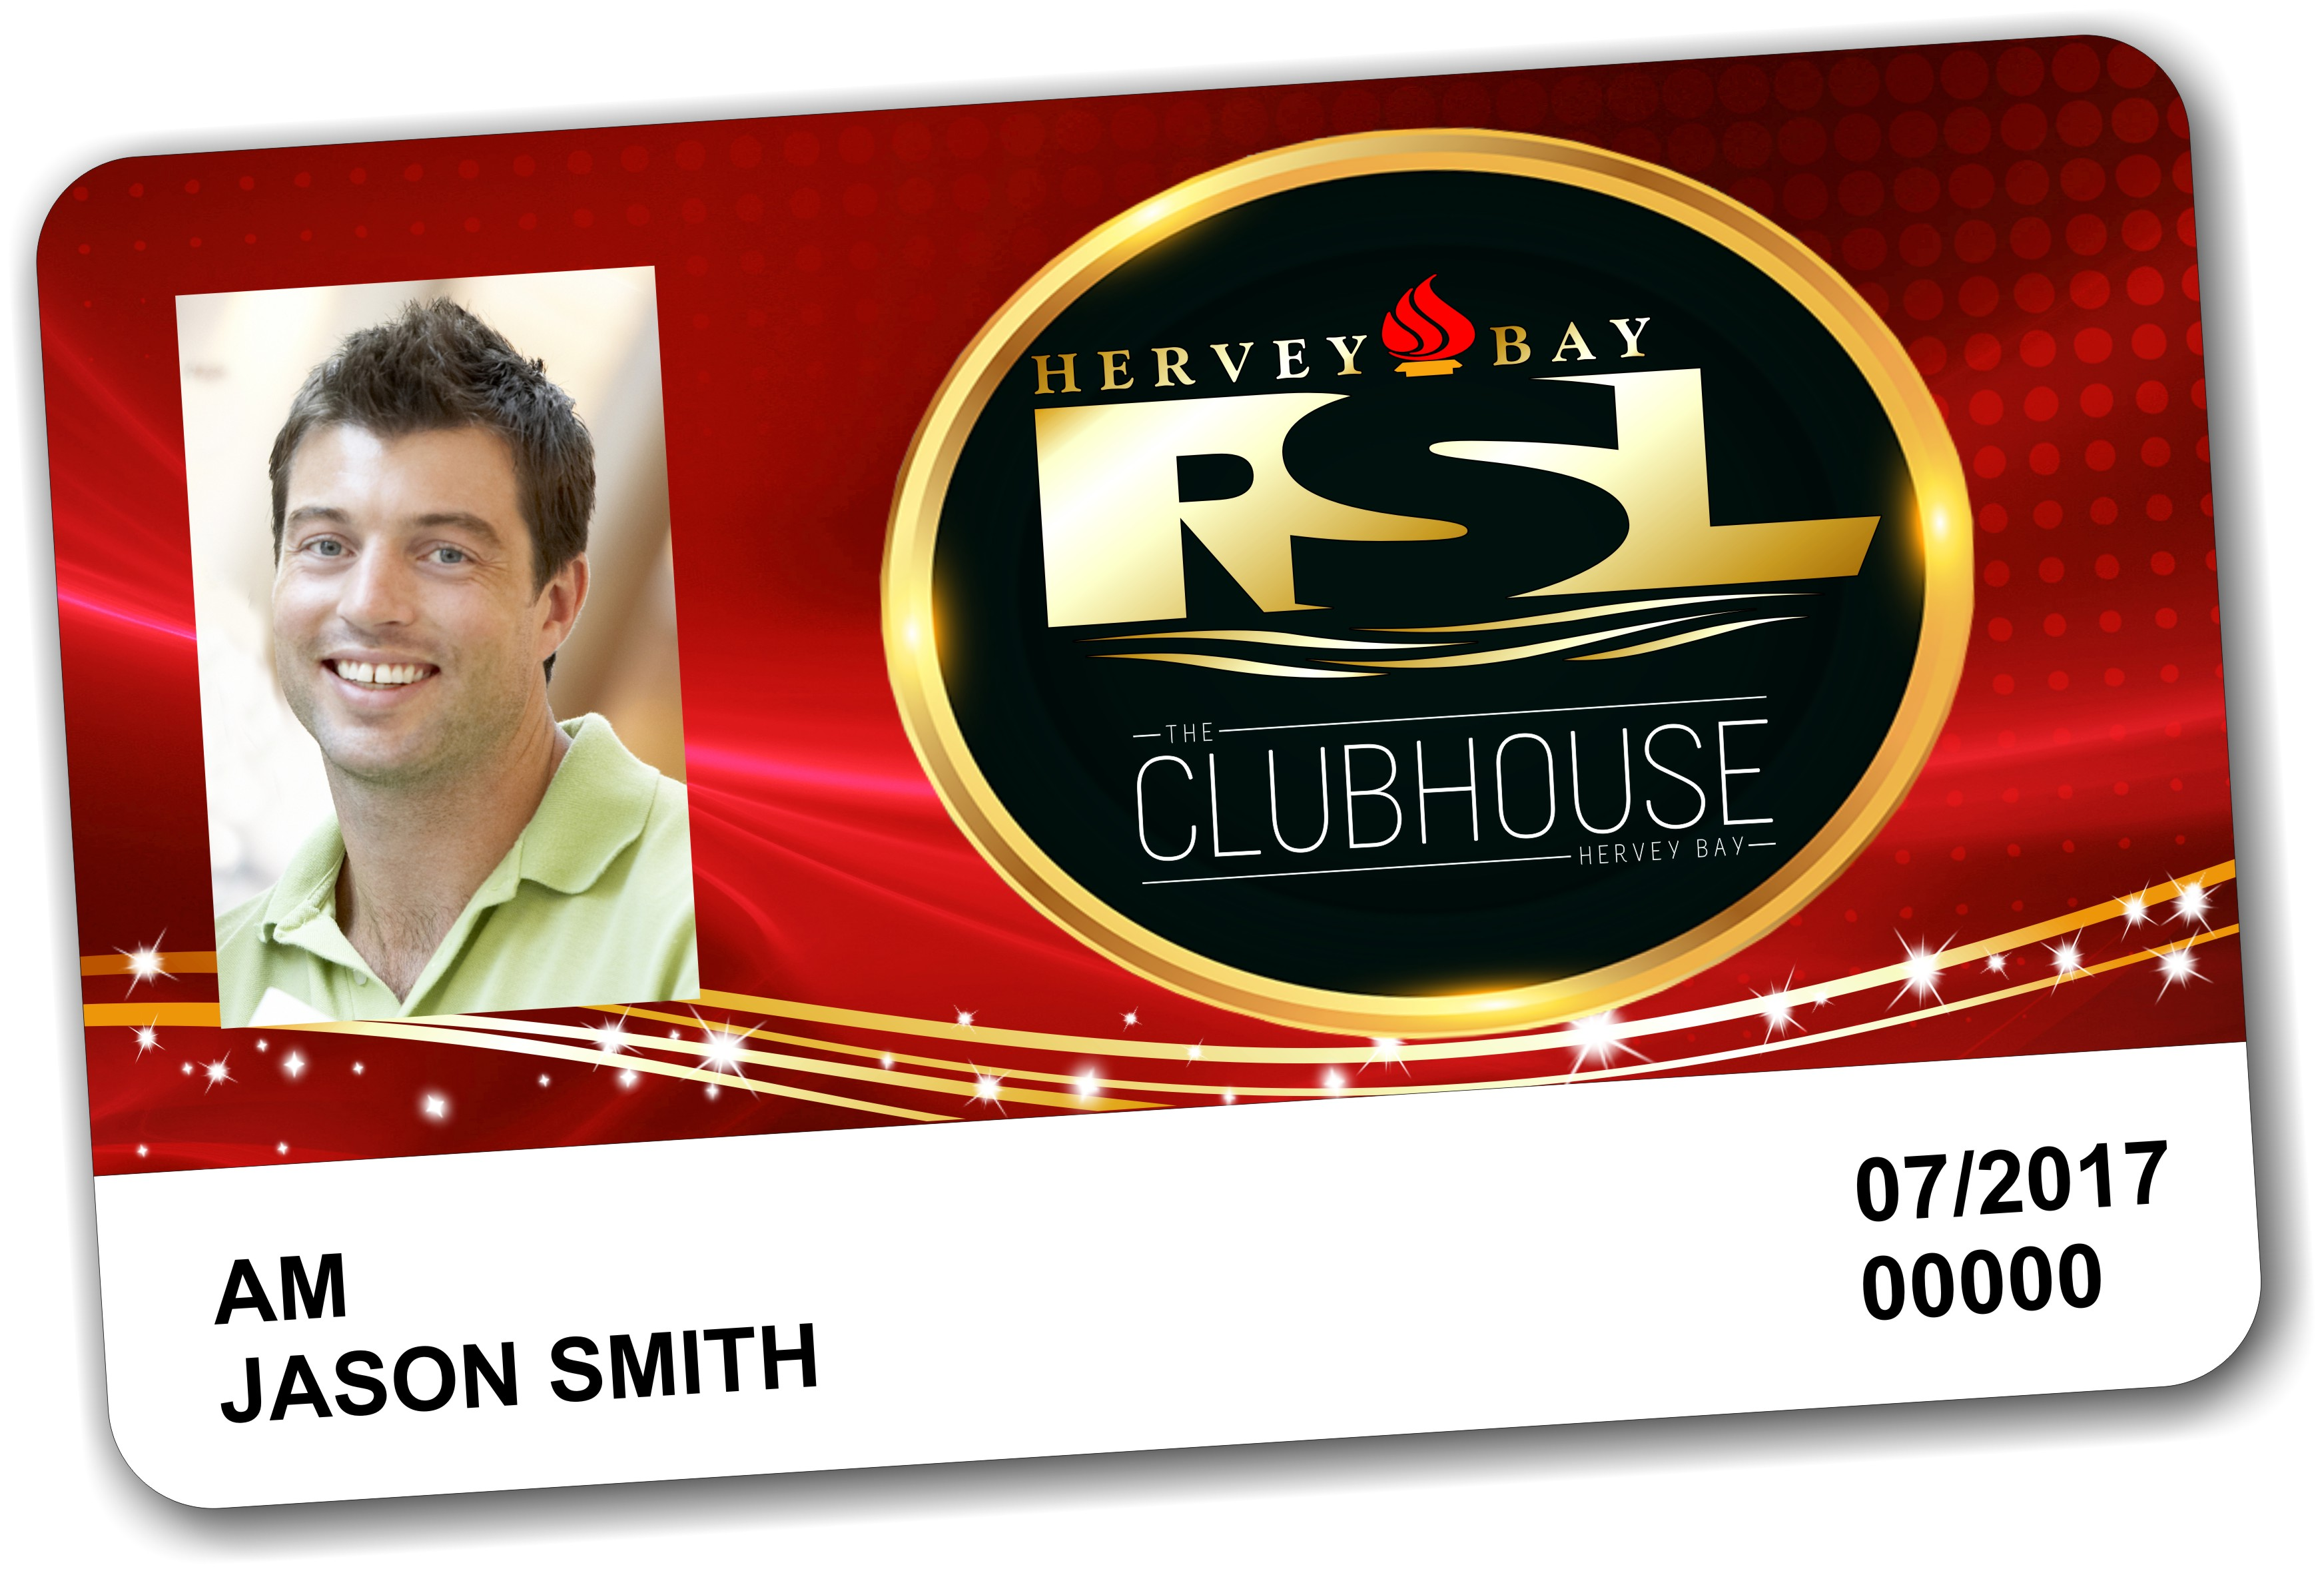 Pic 20 RSL Clubhouse Card